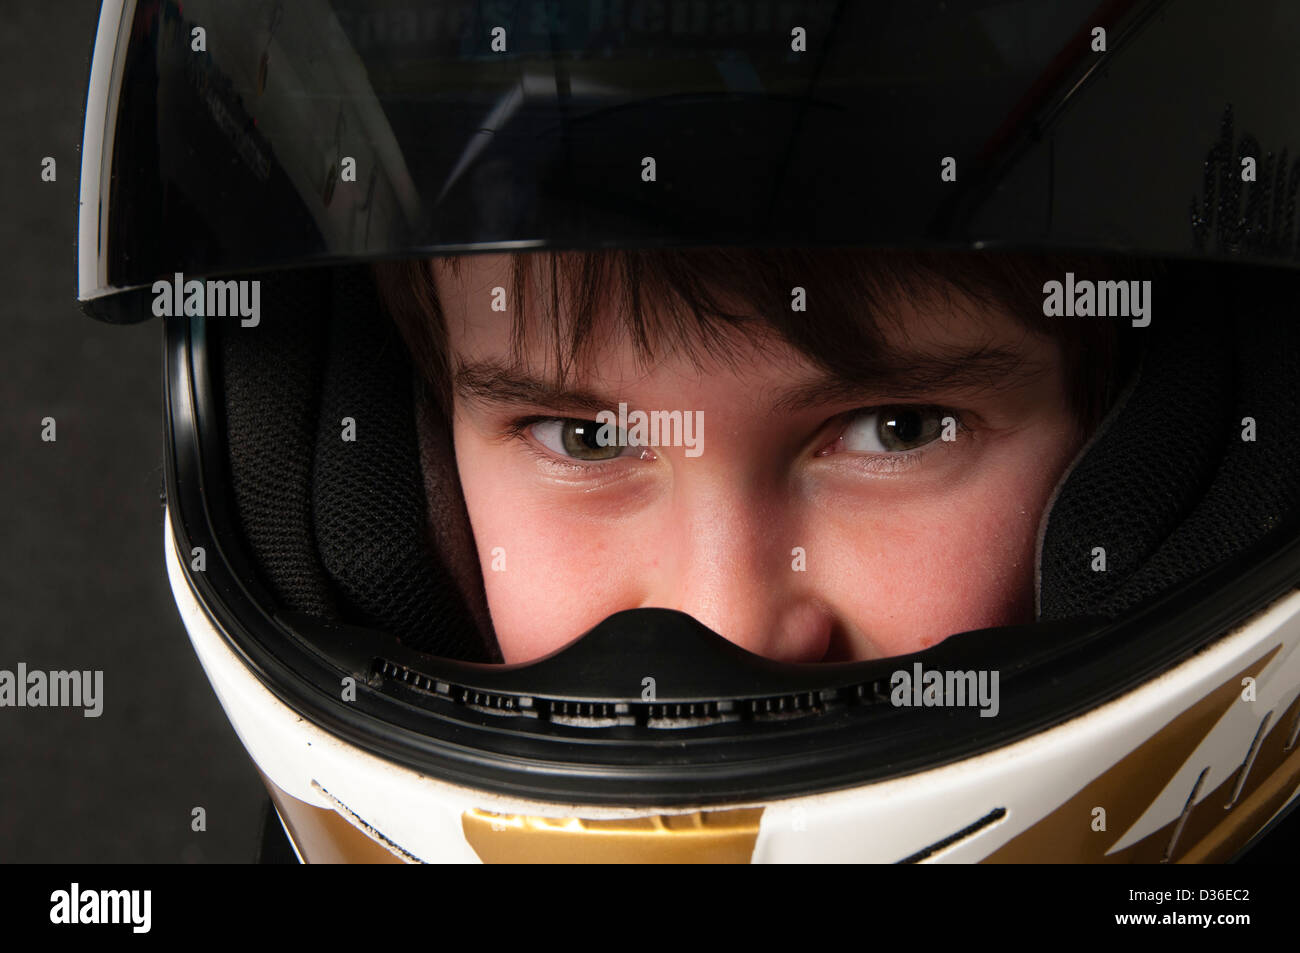 Child Wearing A Motorsport Crash Helmet - Stock Image